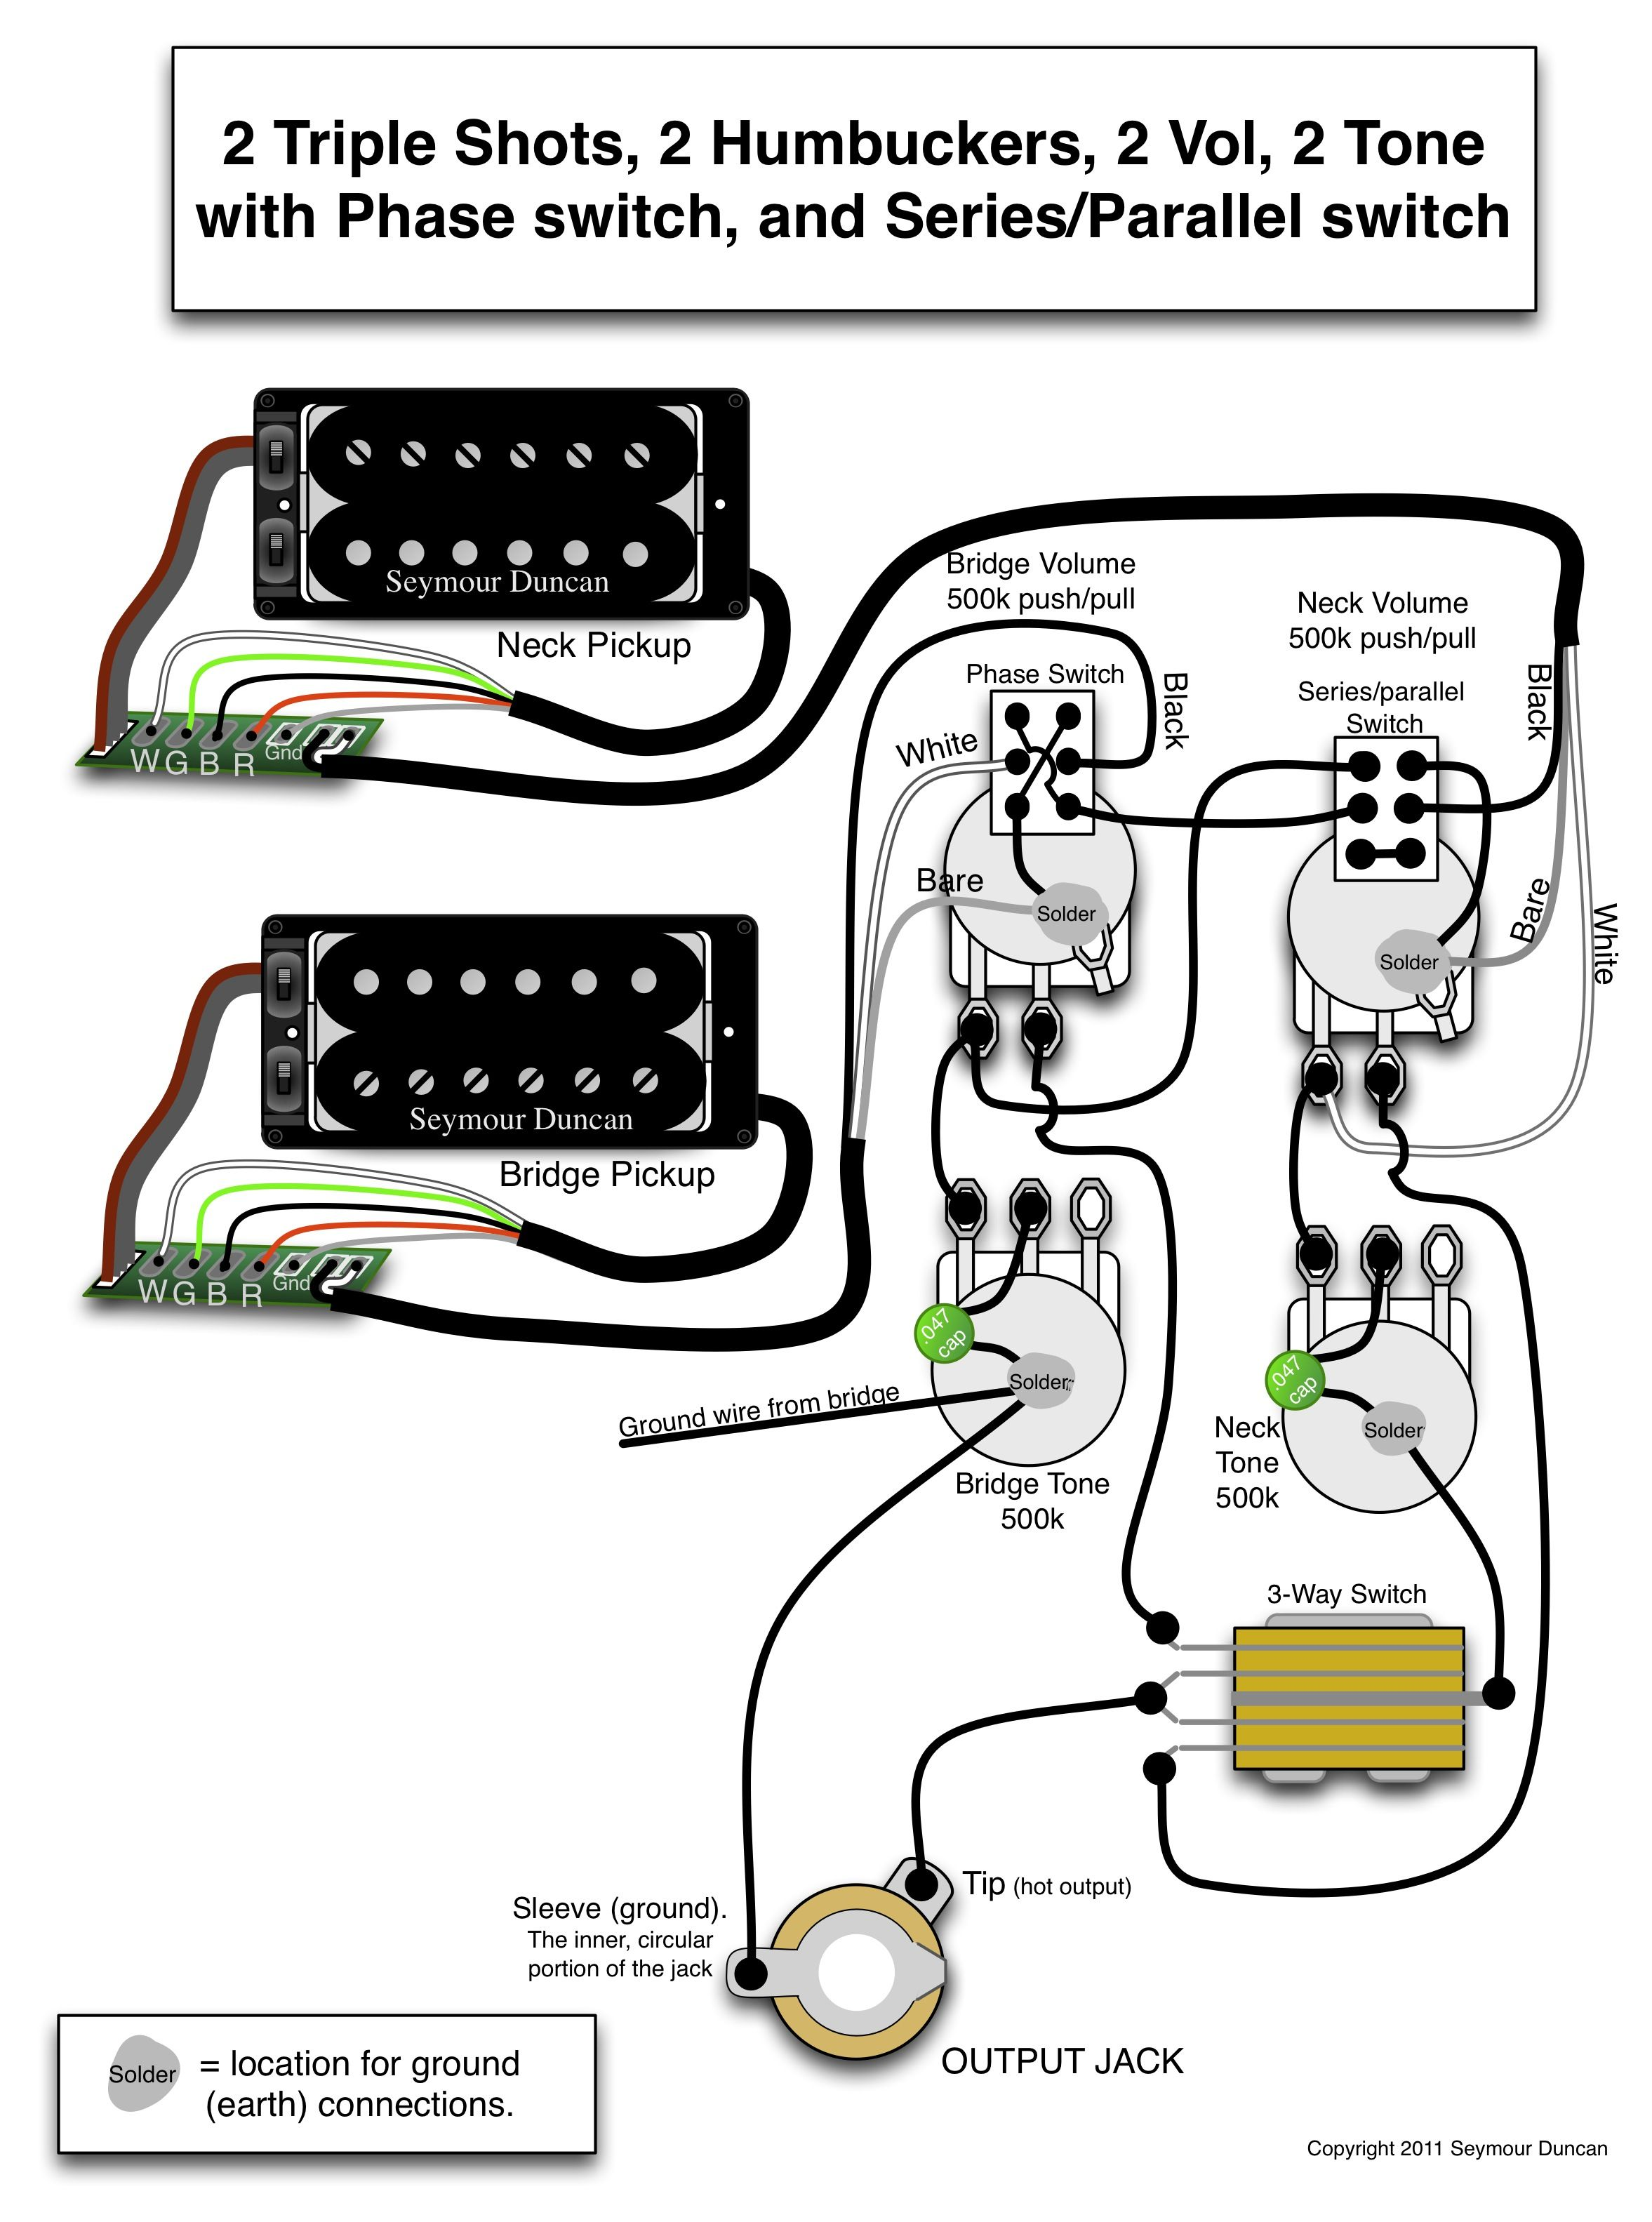 seymour duncan wiring diagram 2 triple shots 2 humbuckers 2 vol rh pinterest com Three Humbucker Wiring Two Humbucker Wiring-Diagram